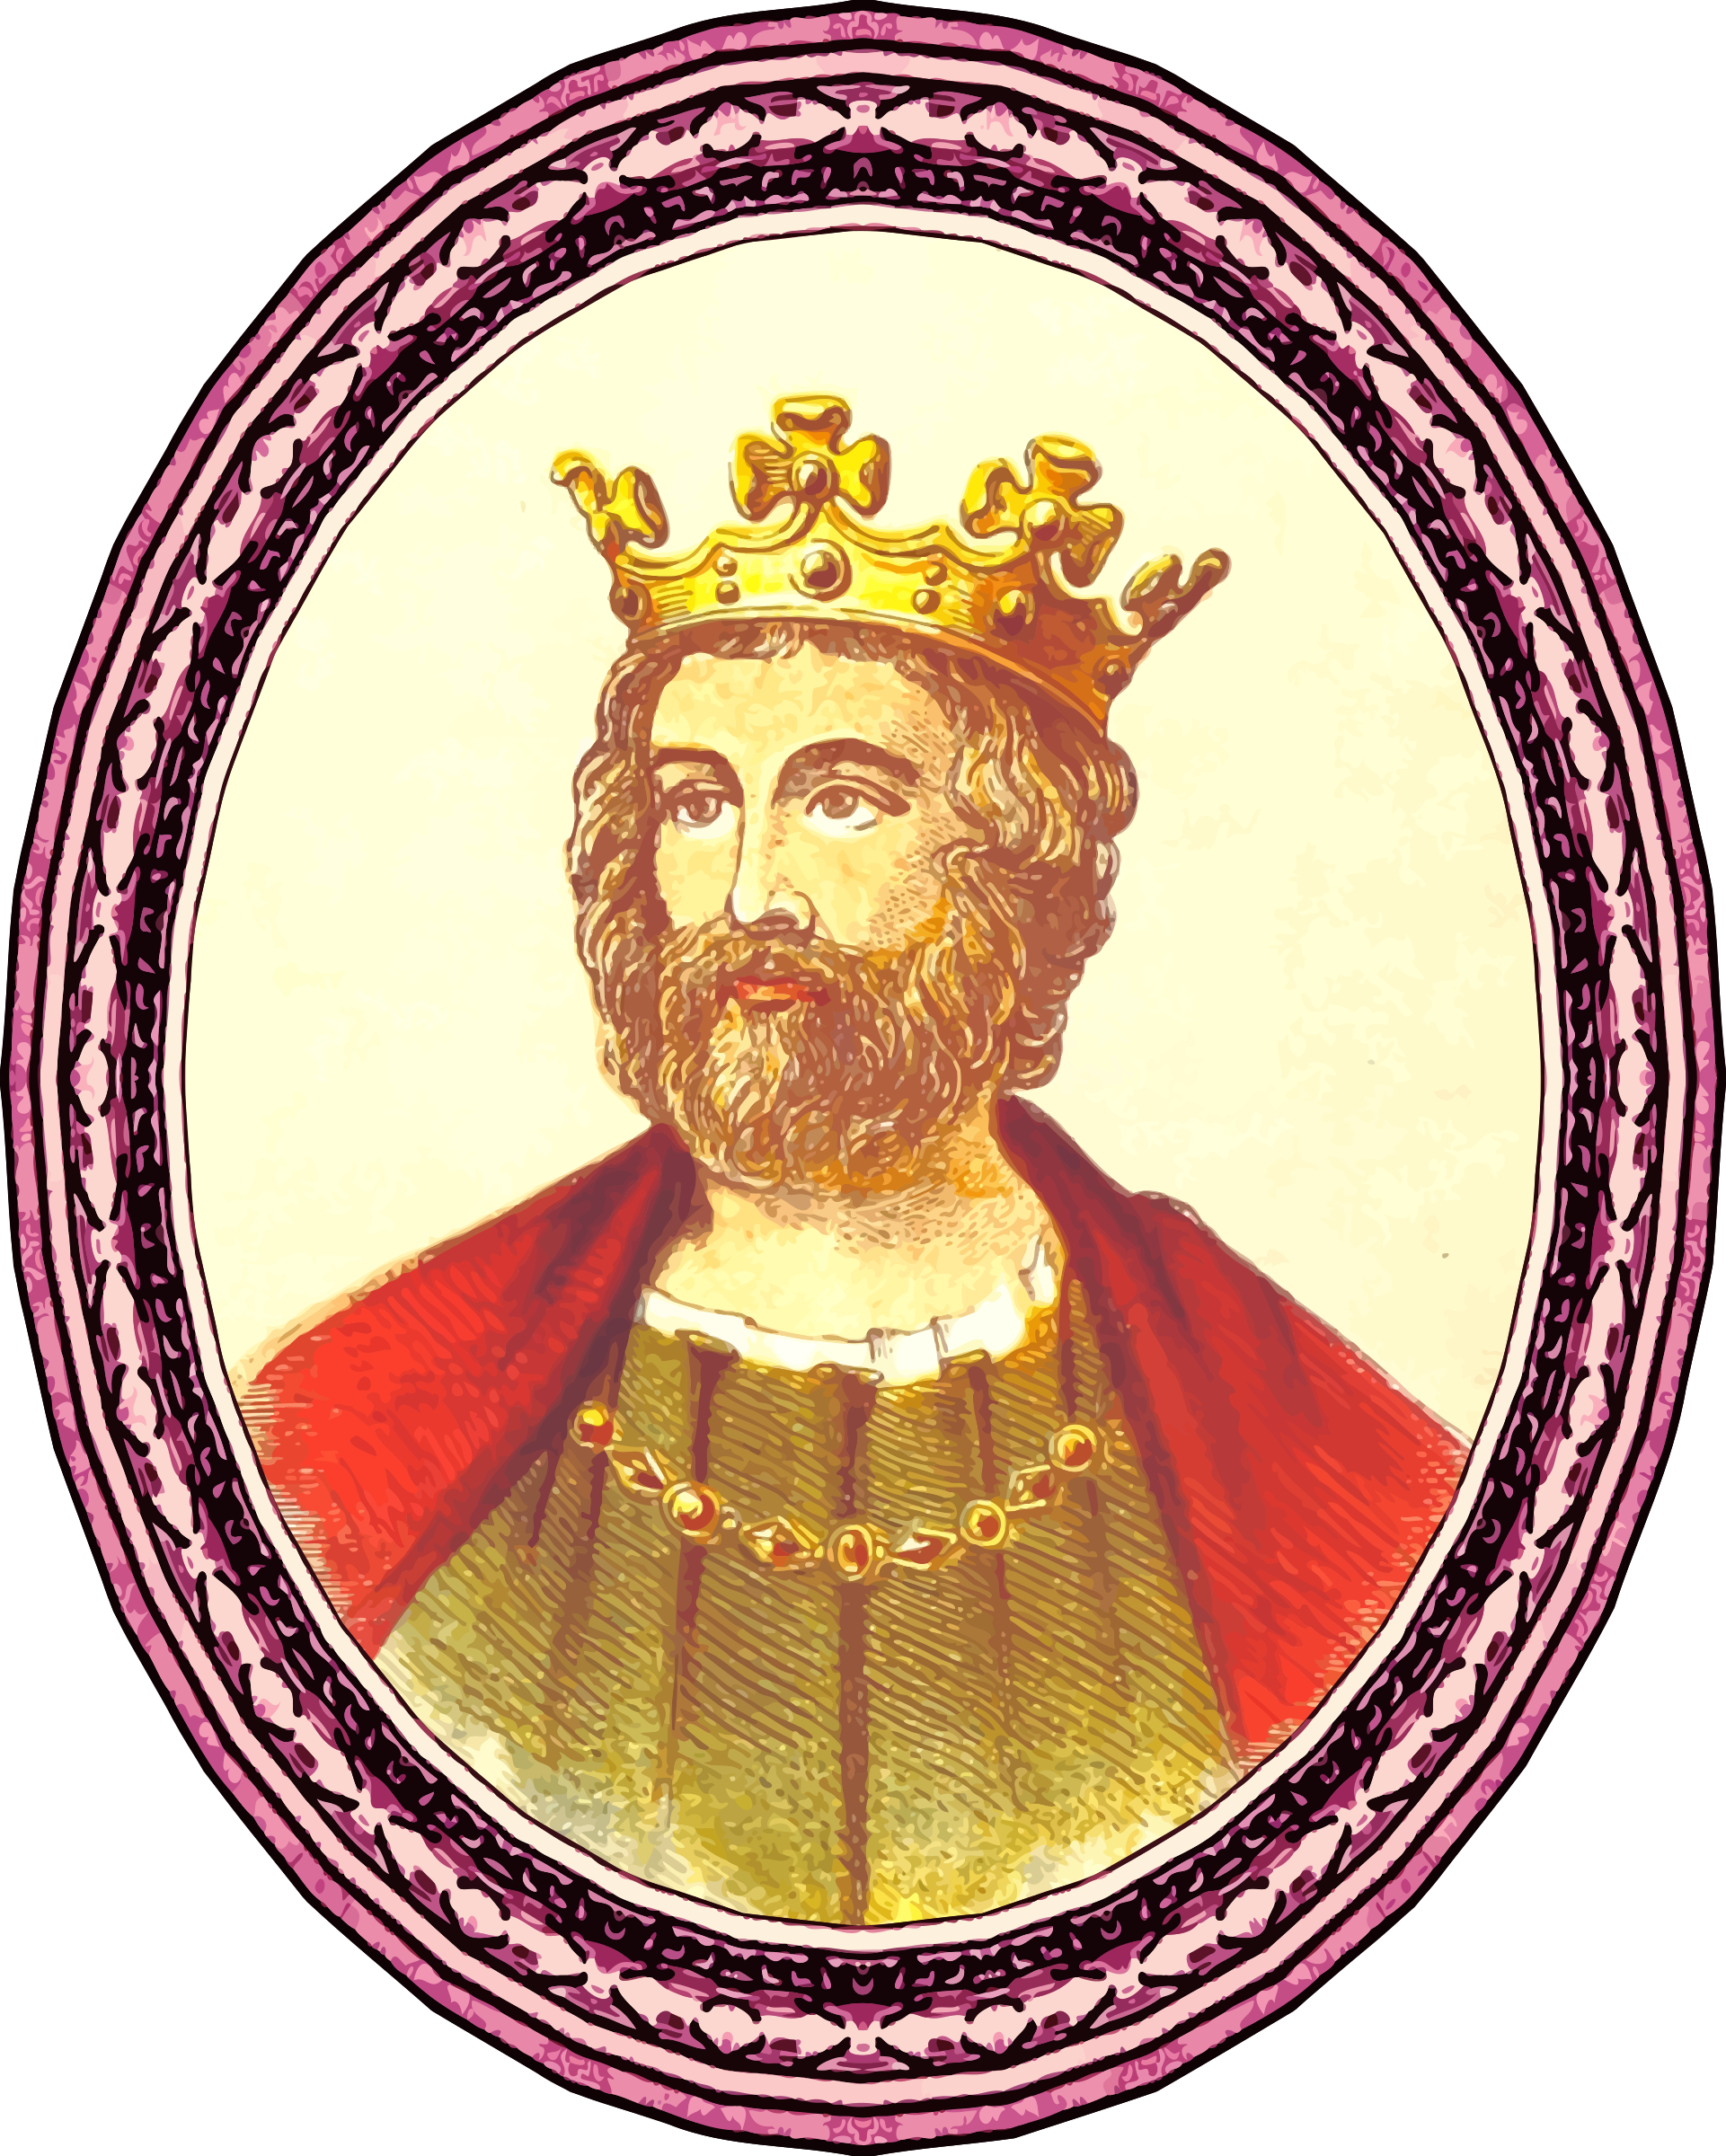 King Edward II (framed) by Firkin